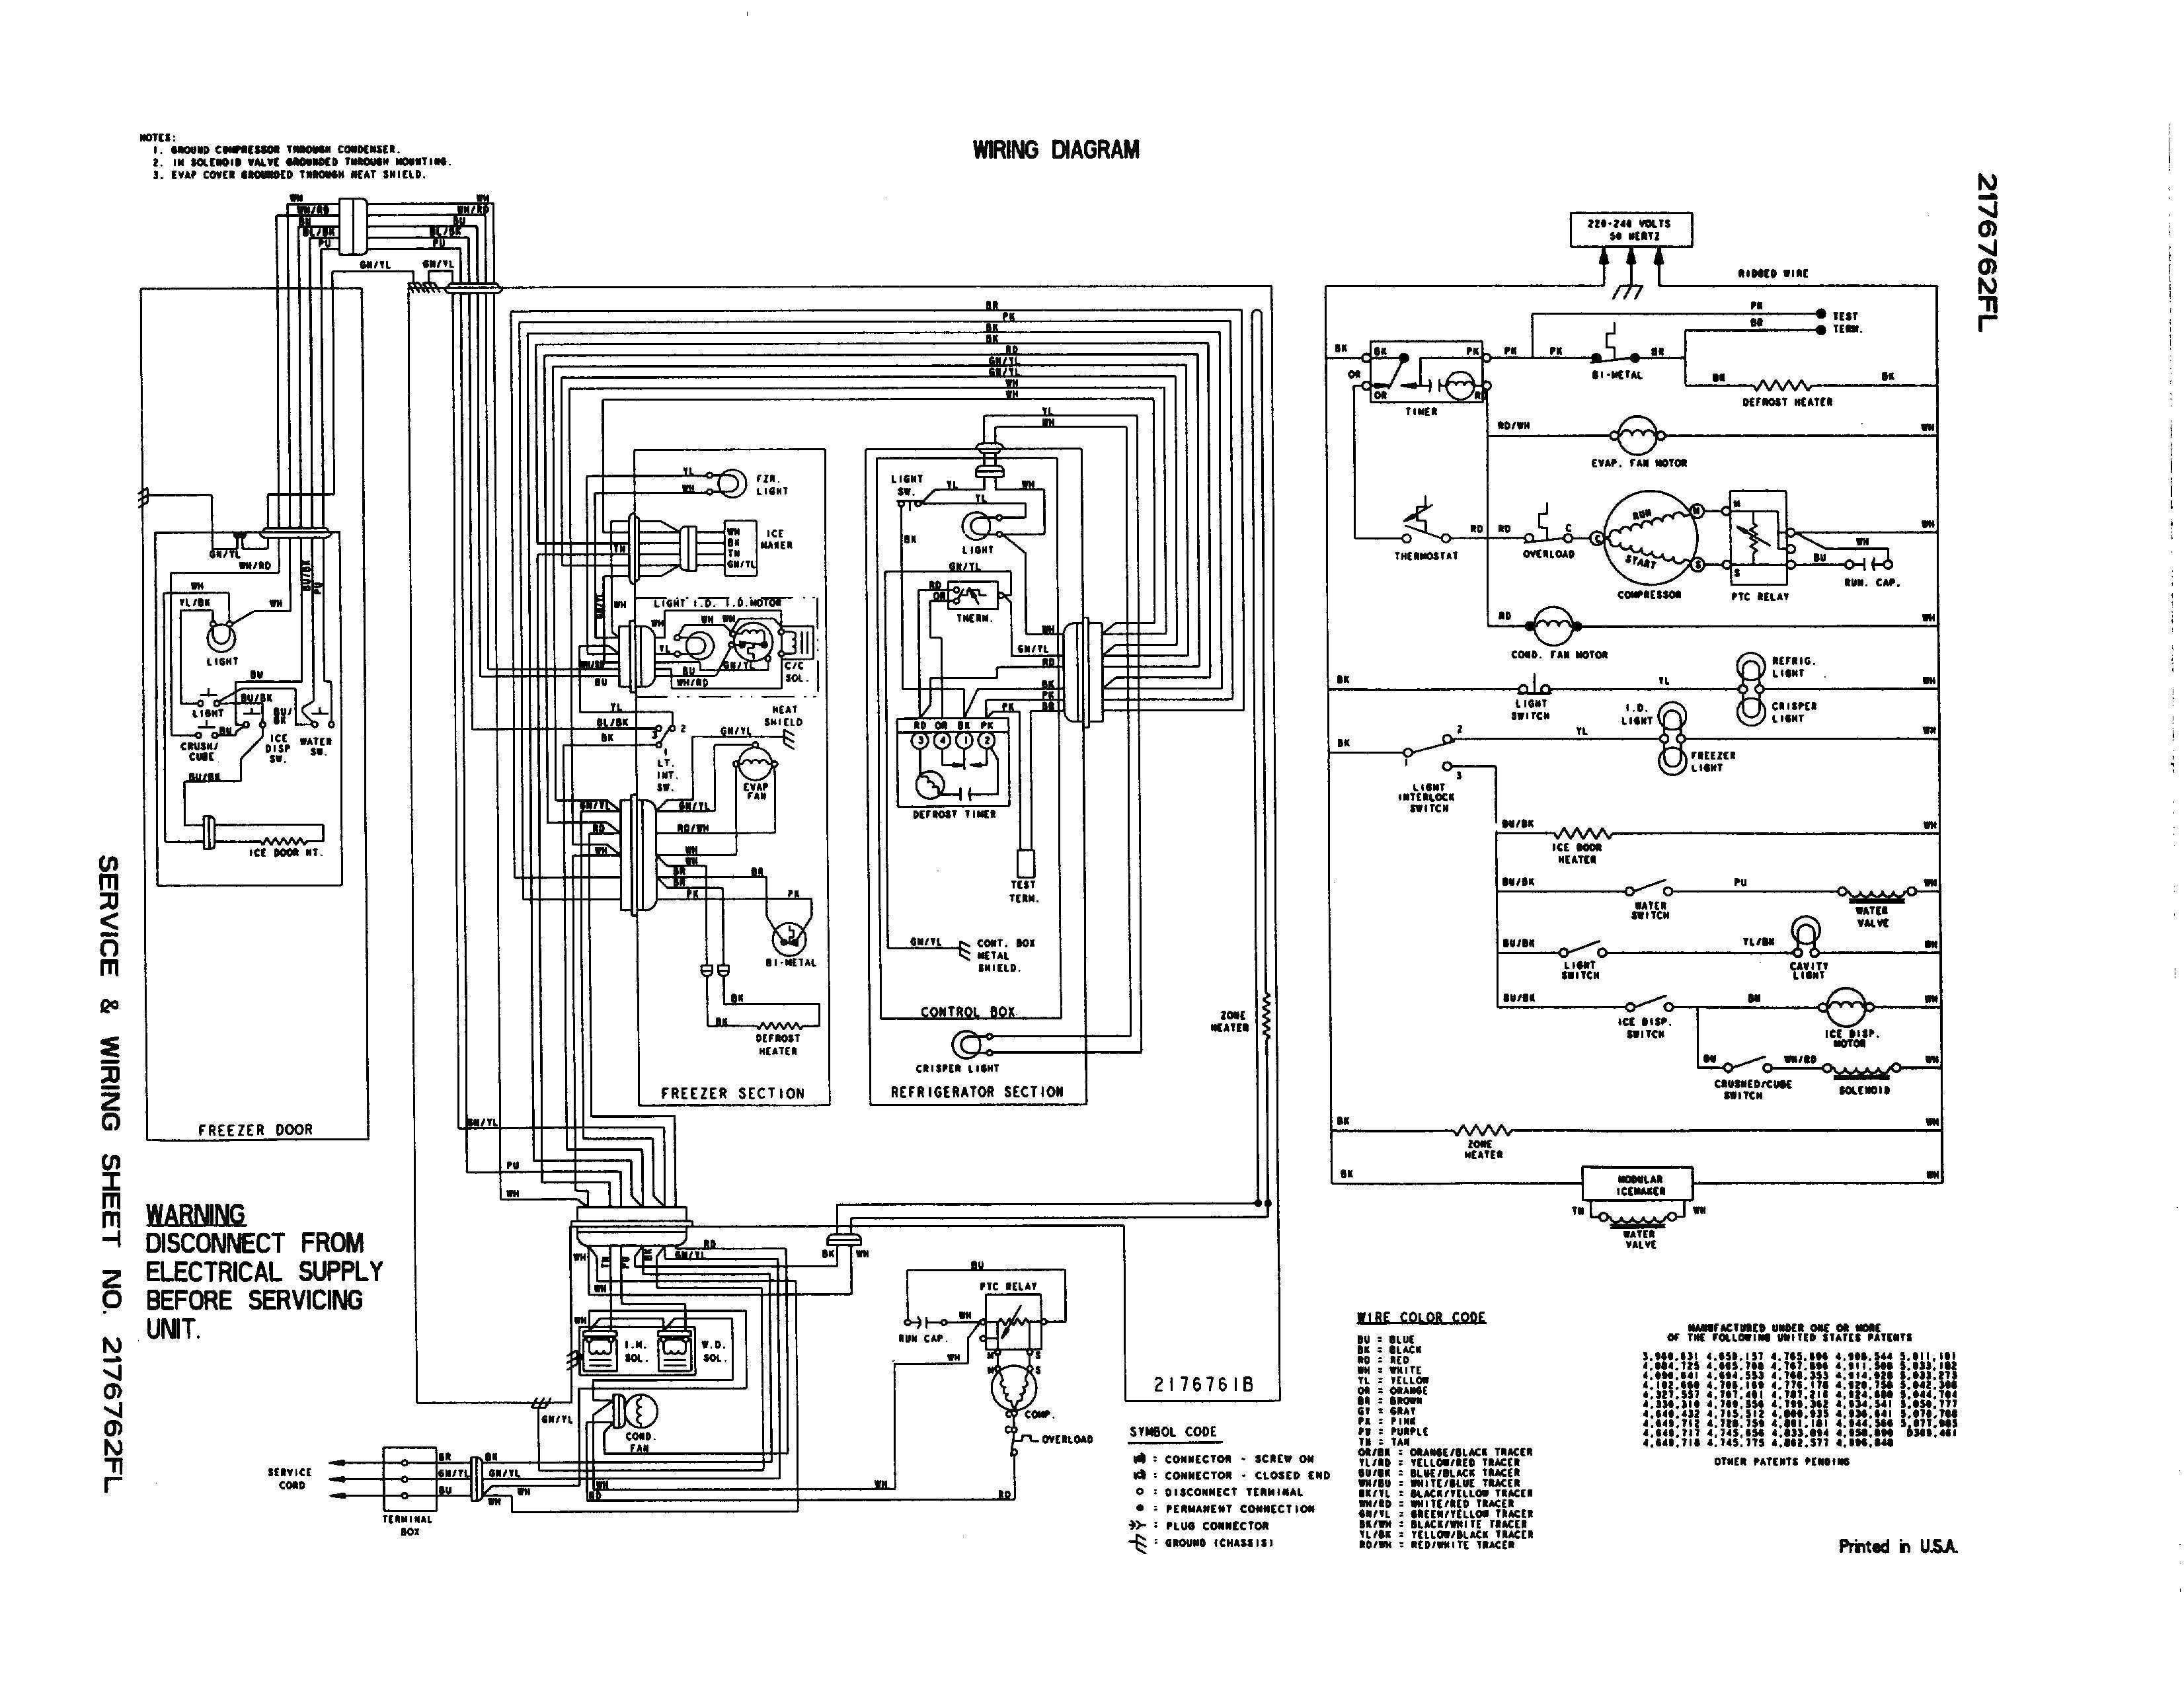 DIAGRAM] Forest River Wiring Diagram FULL Version HD Quality Wiring Diagram  - MONEYDIAGRAM.CINEMABREVE.ITCinema Breve